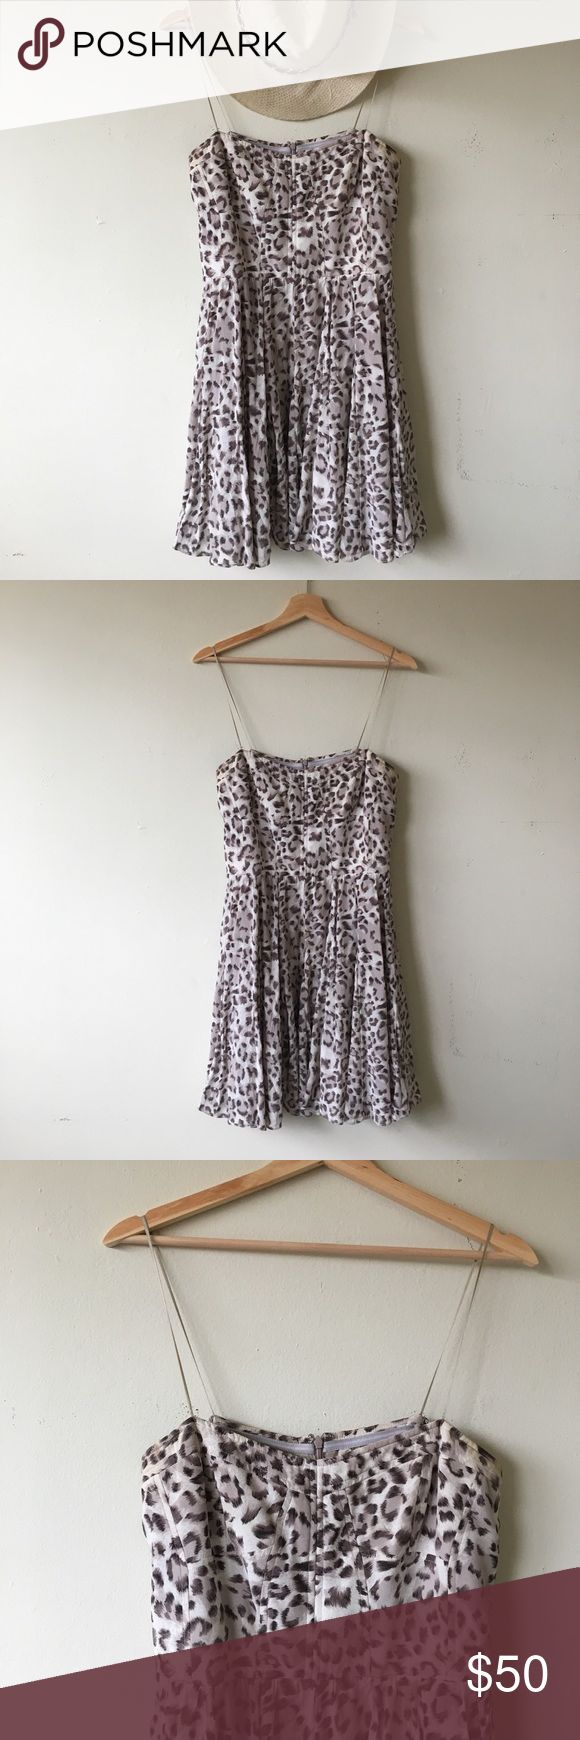 🌸 Greylin Silk Leopard Bustier Style Dress 🌸 beautiful and vey flattering fit / sleek thin straps and slight purple gray pattern / 100 % silk and polyester lining / size unmarked fits like M / looks great with cowboy boots Greylin Dresses Mini